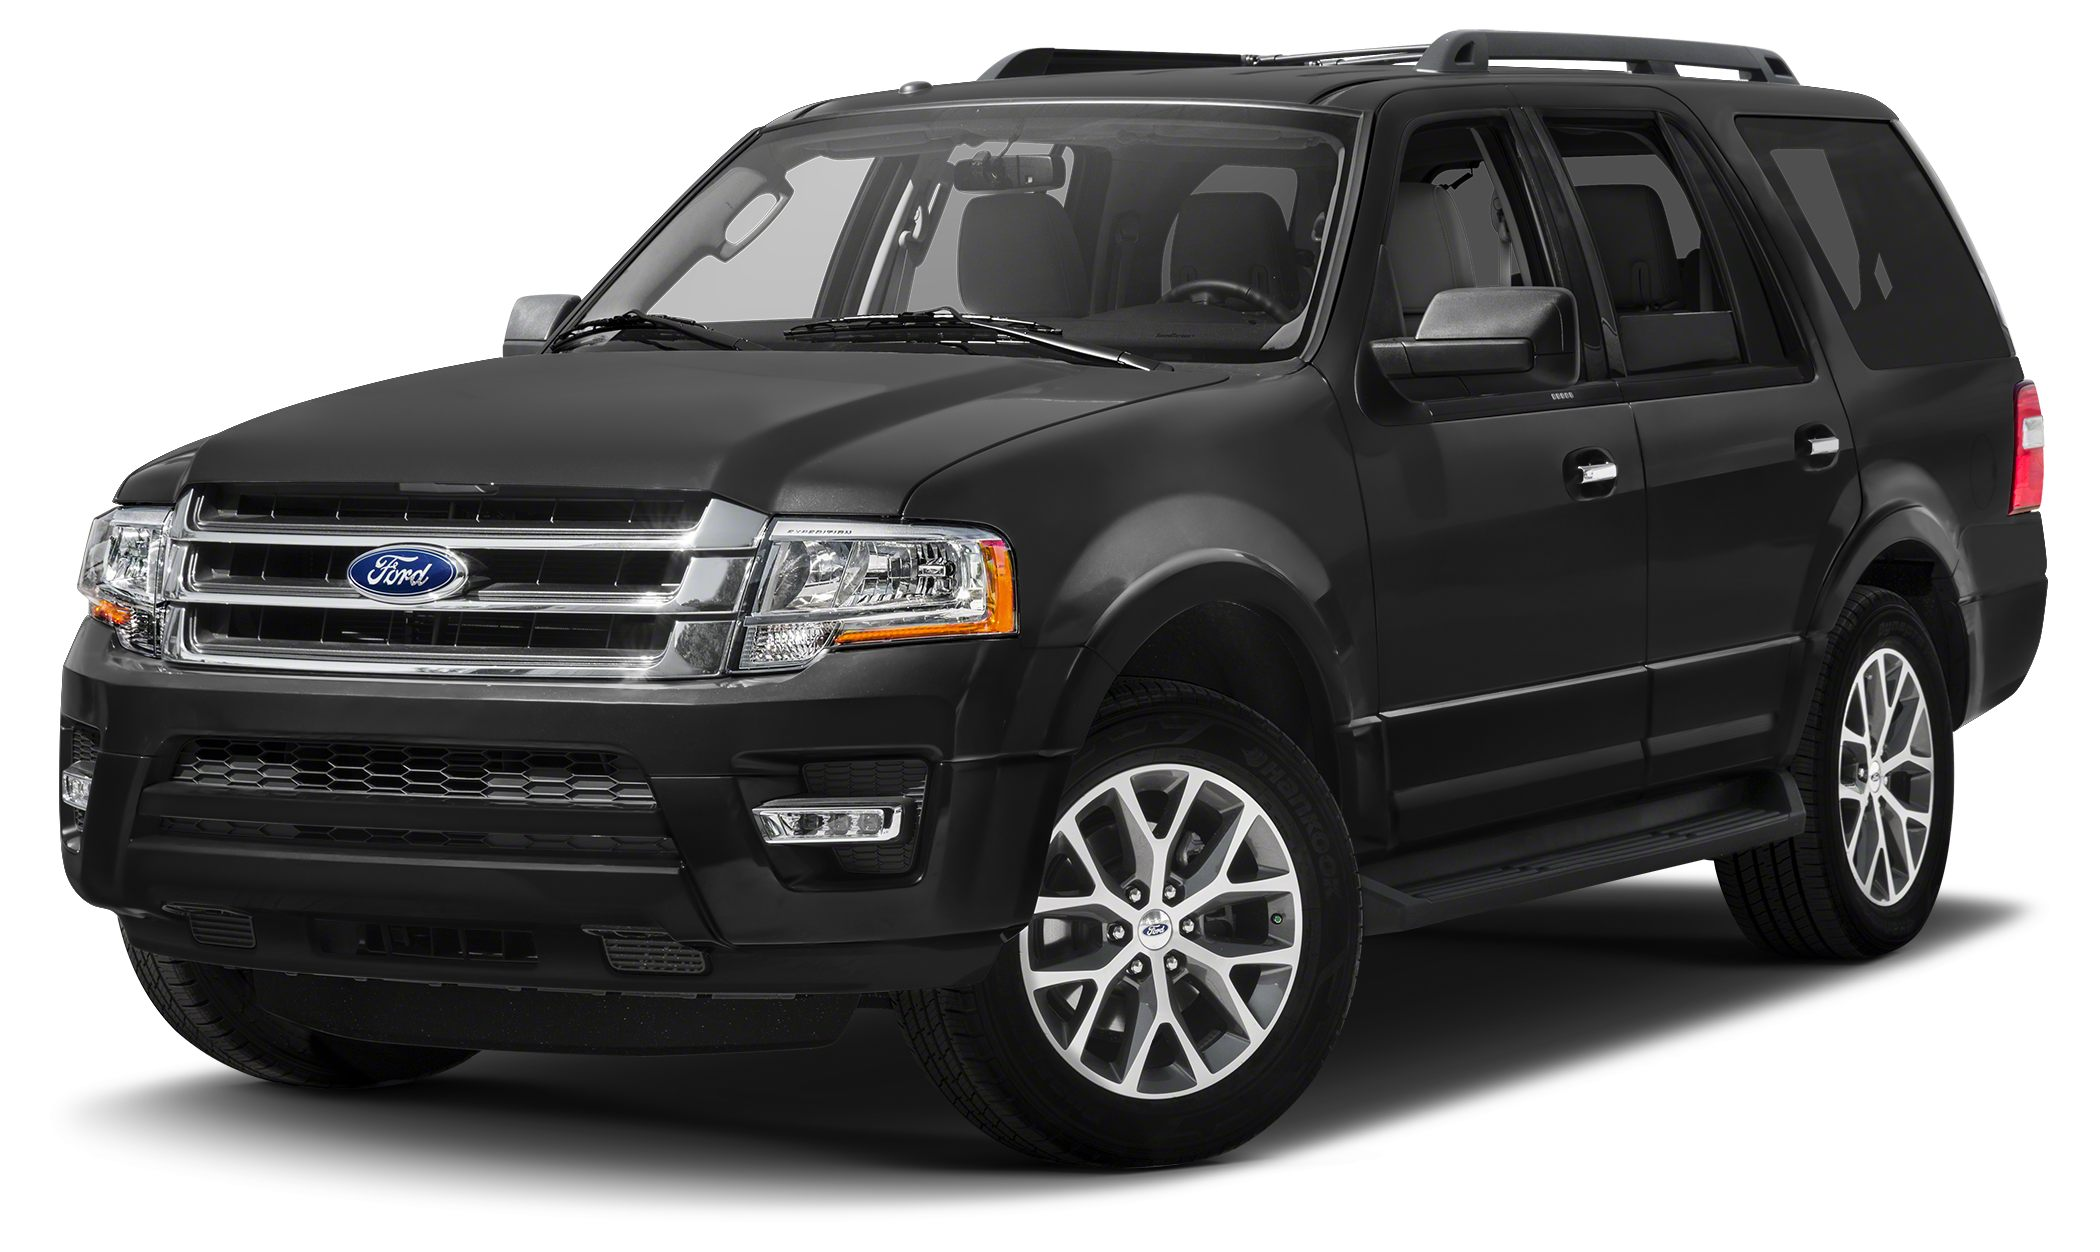 2015 Ford Expedition Limited Redesigned for 2015 welcome in the all new Ford Expedition A new agg